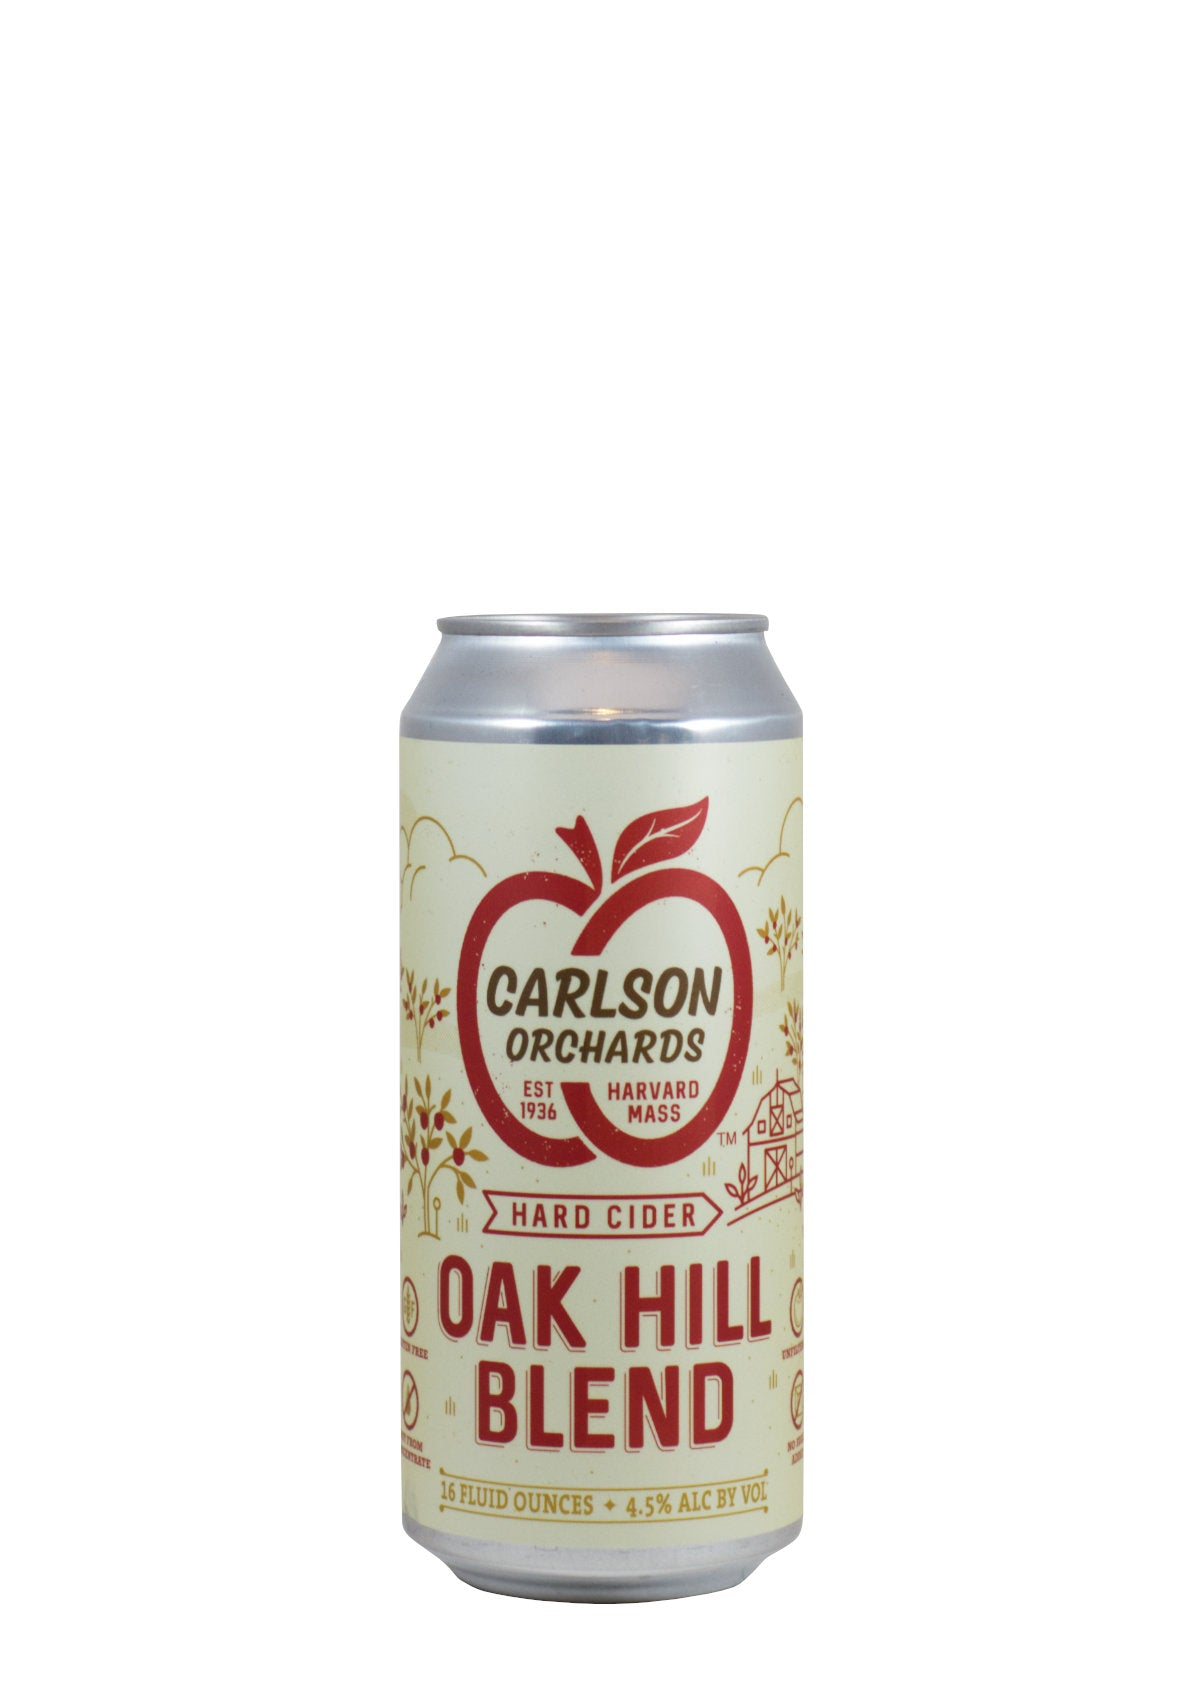 Carlson Orchards Oak Hill Blend Cider (Harvard, MA)